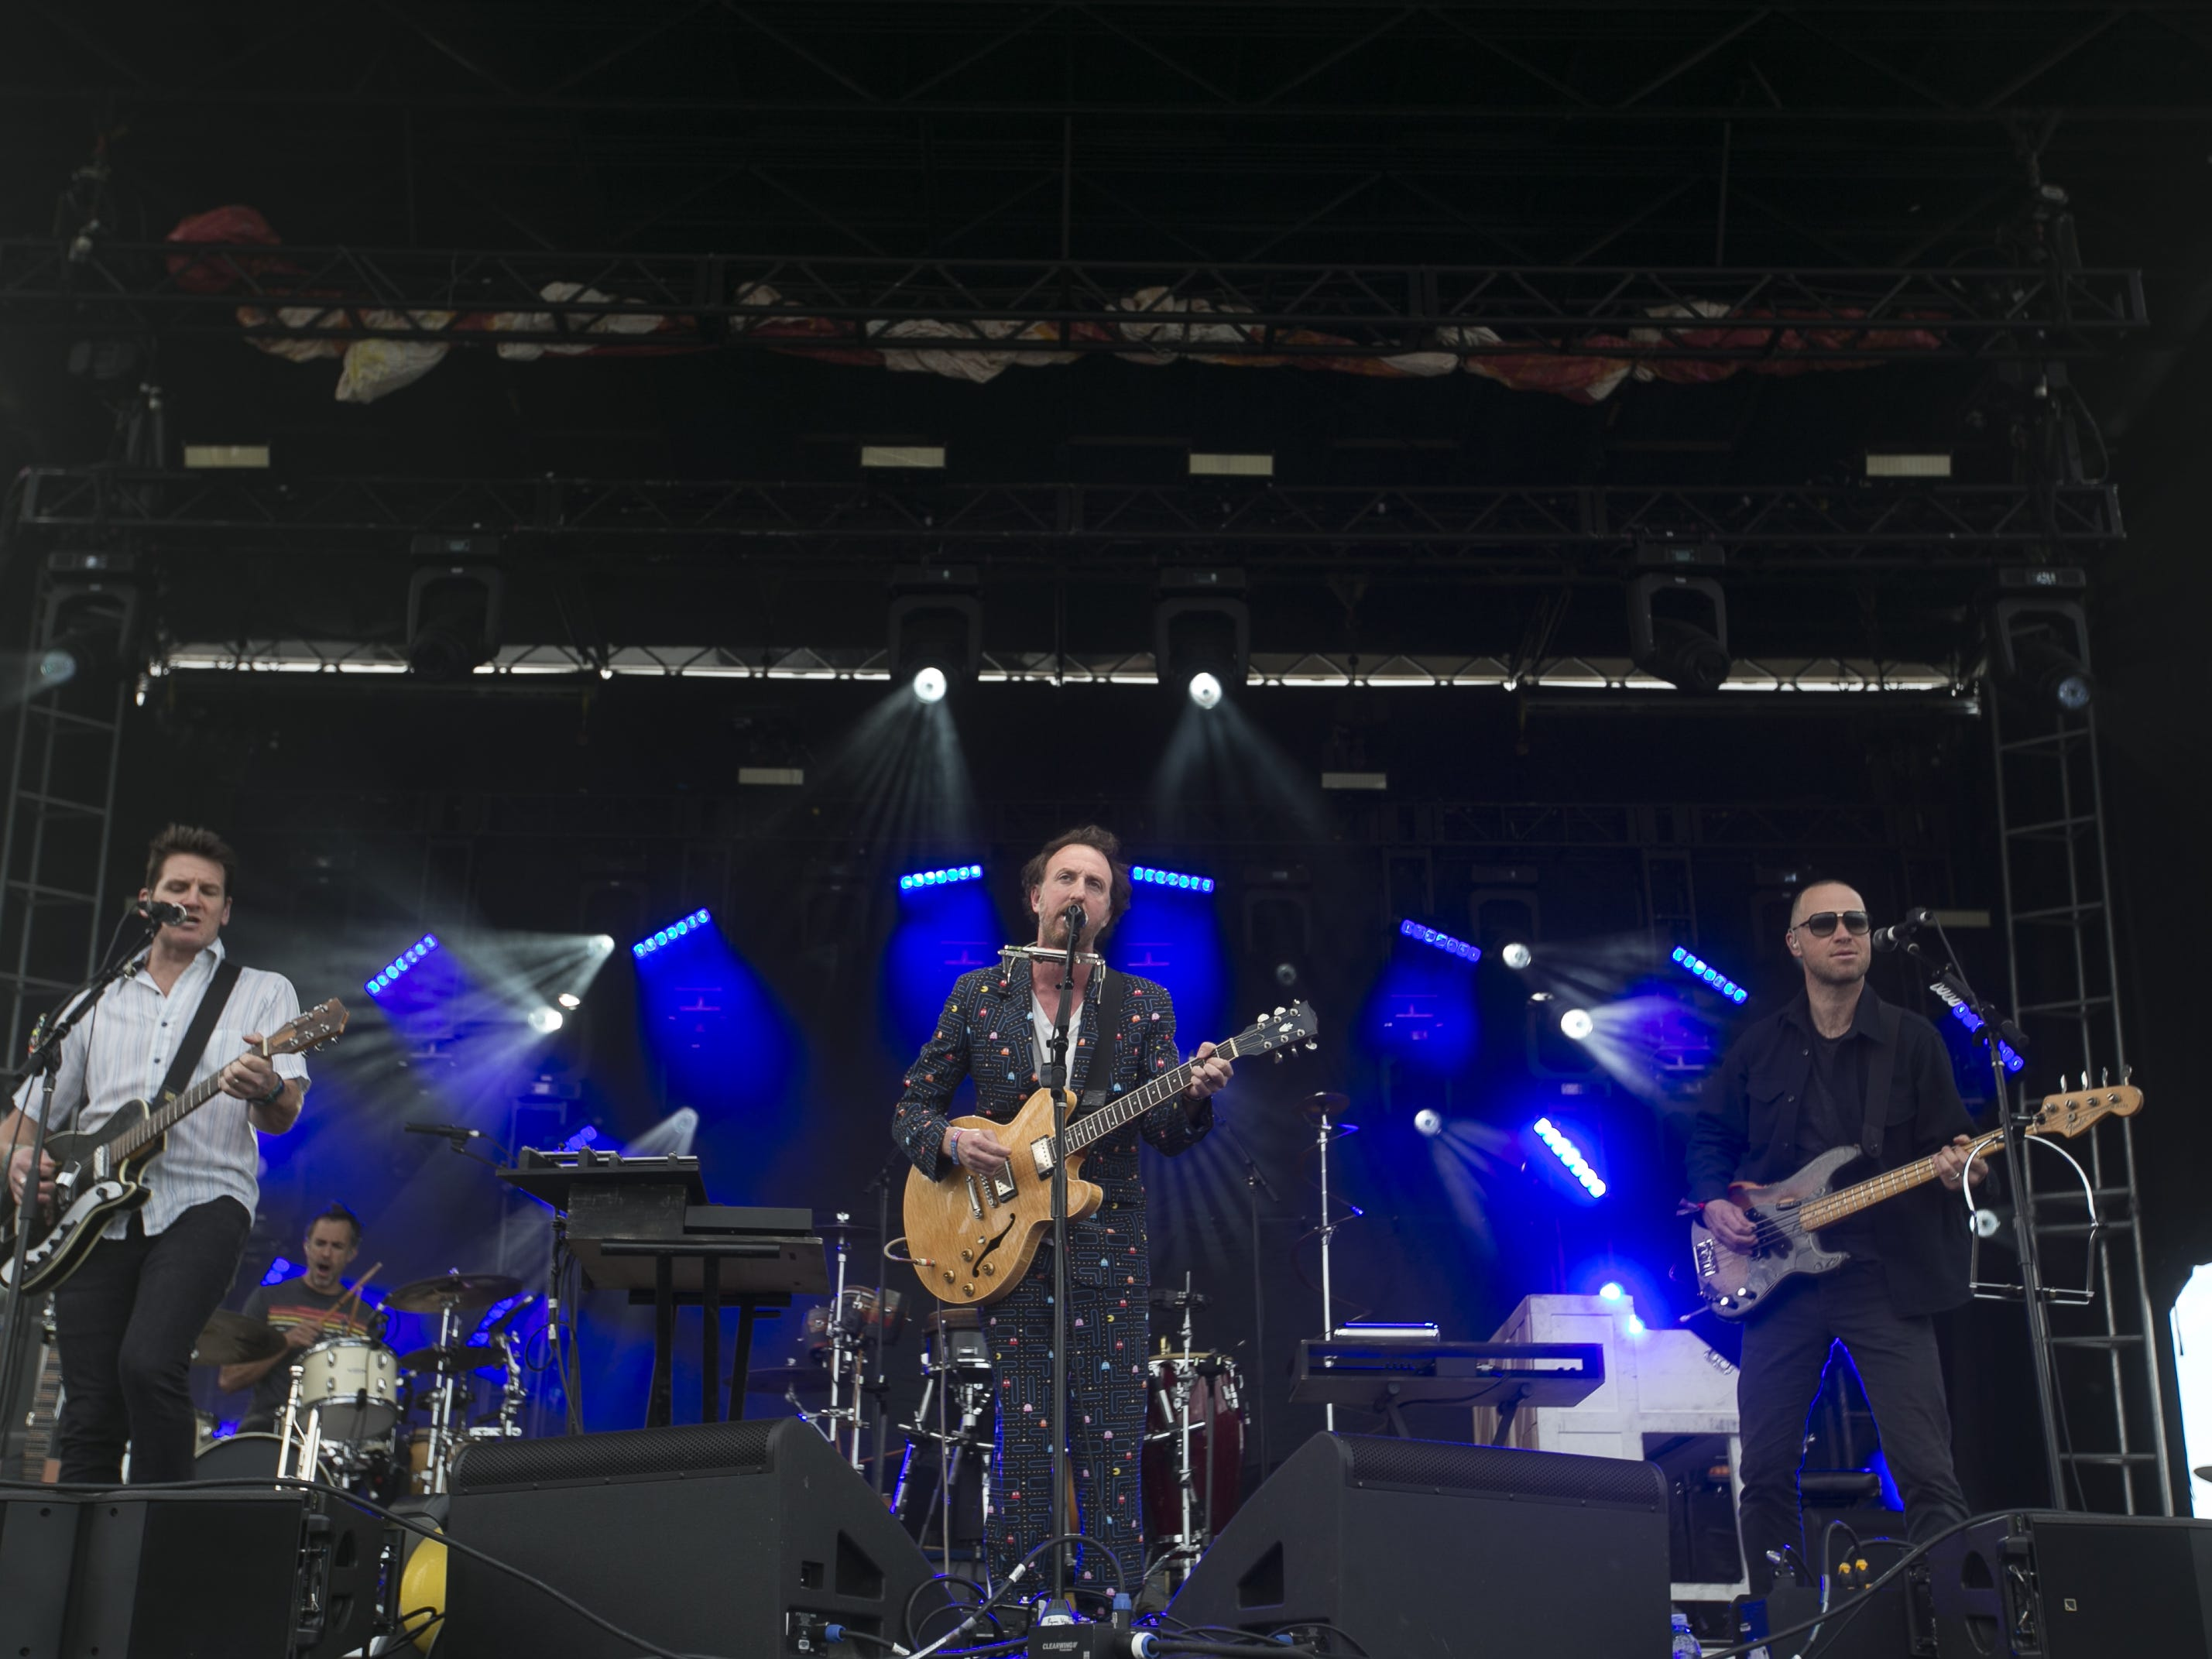 Guster perform at the Innings Festival at Tempe Beach Park in Ariz. on Saturday, March 2, 2019.